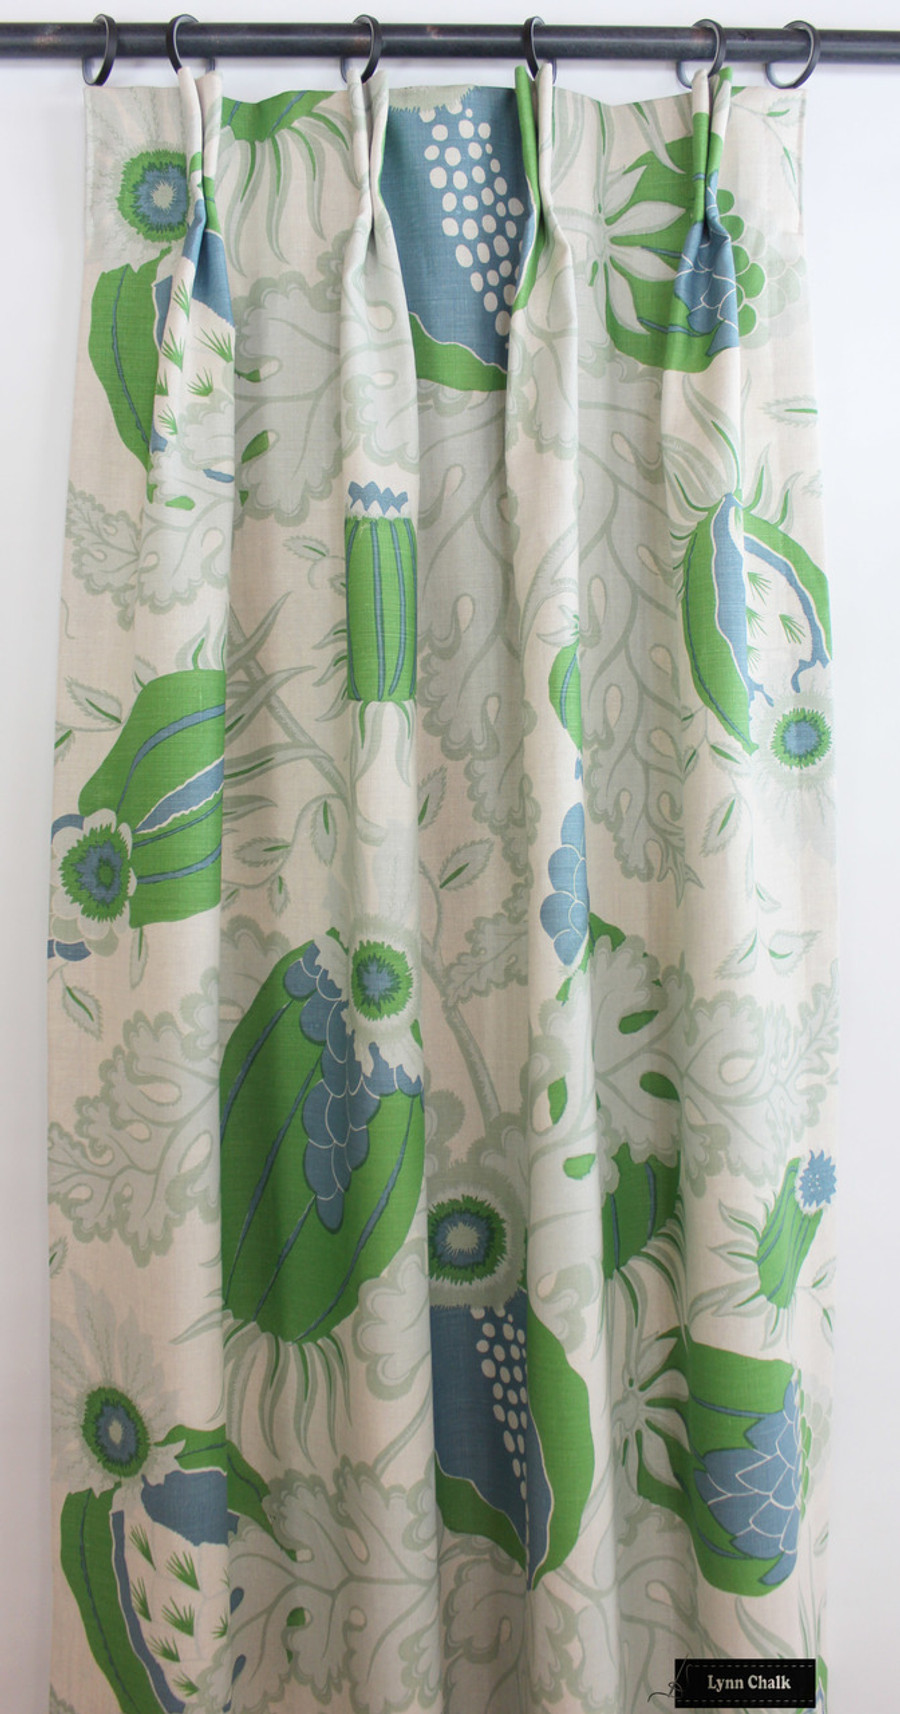 Christopher Farr Carnival Roman Shades and Pillows on Window Seat (shown in Green-comes in several colors)